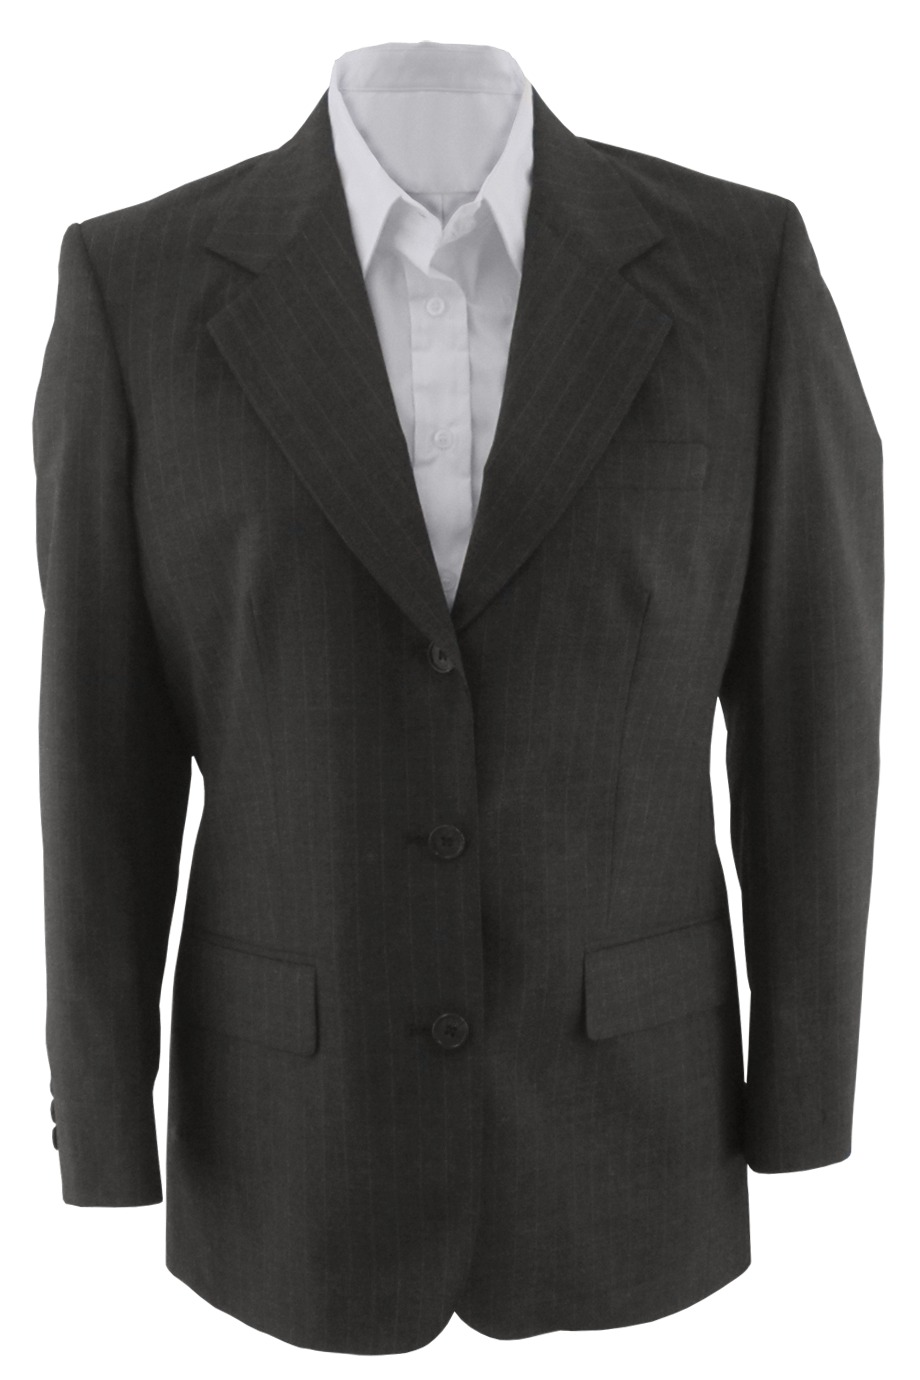 Edwards Garment 6660 - Women's Pinstripe Wool Blend ...